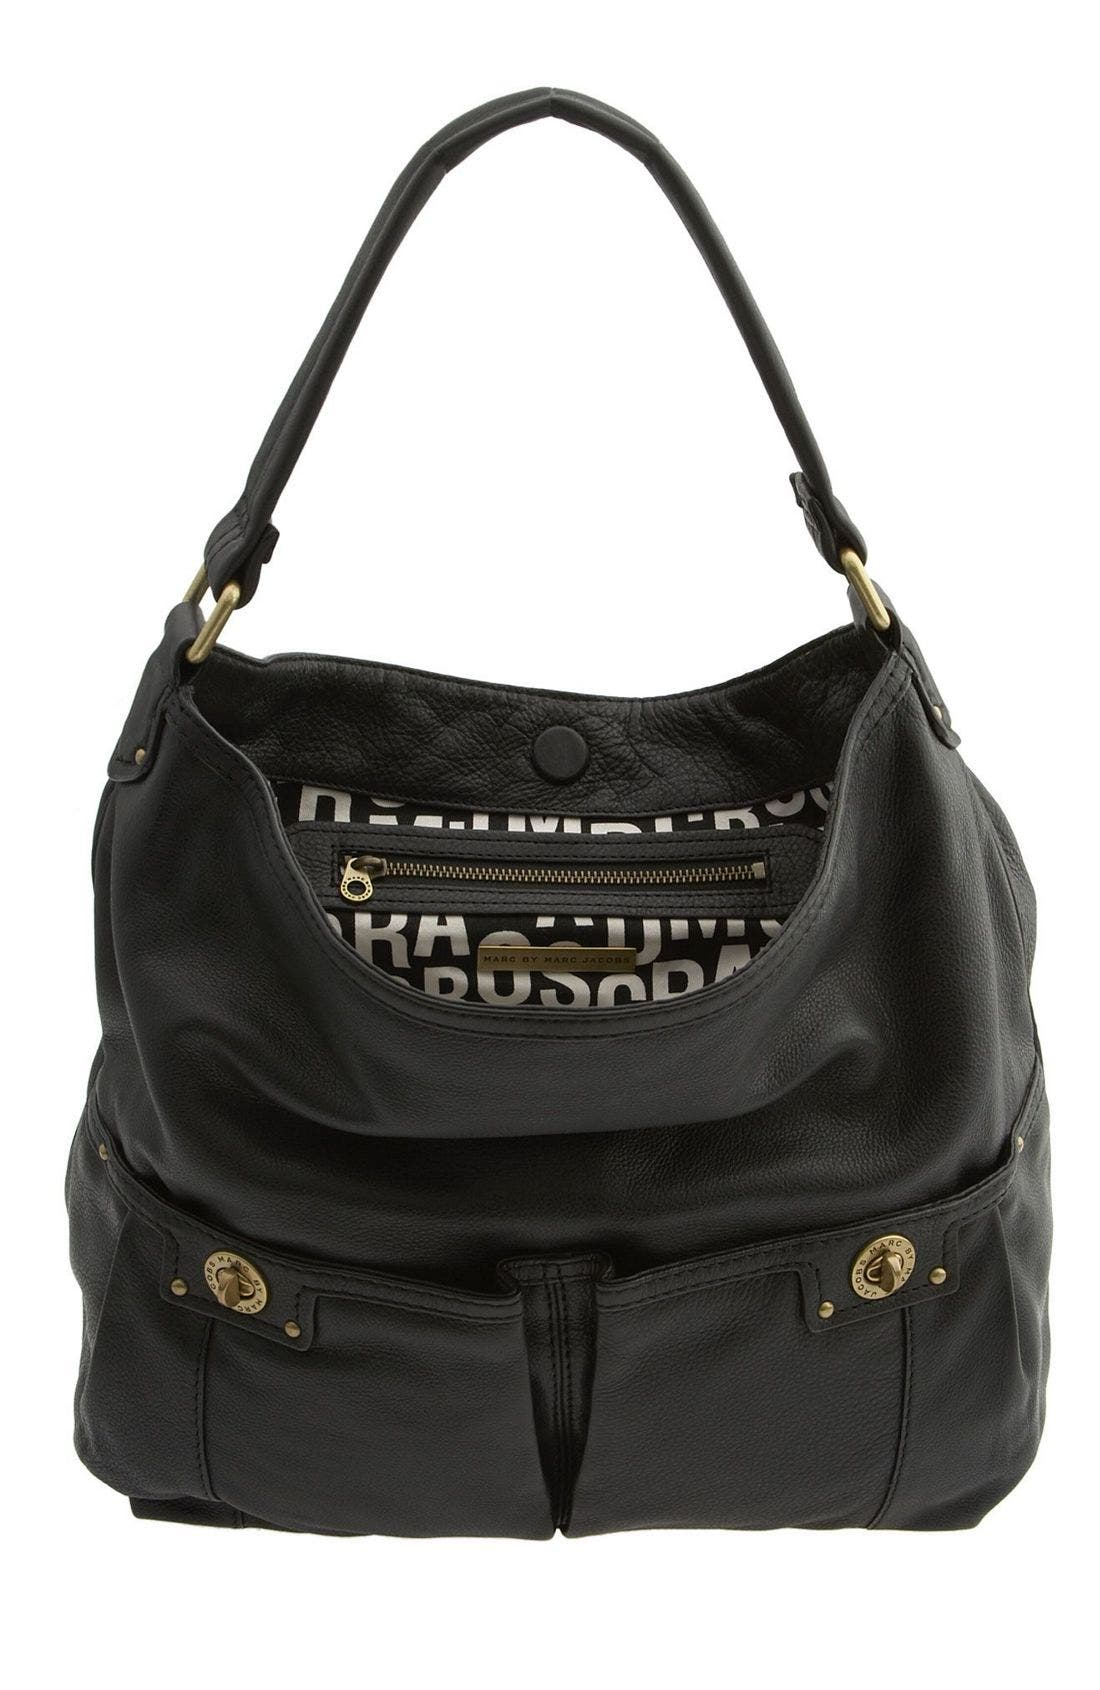 MARC BY MARC JACOBS 'Totally Turnlock - Faridah' Hobo Bag,                             Alternate thumbnail 3, color,                             001